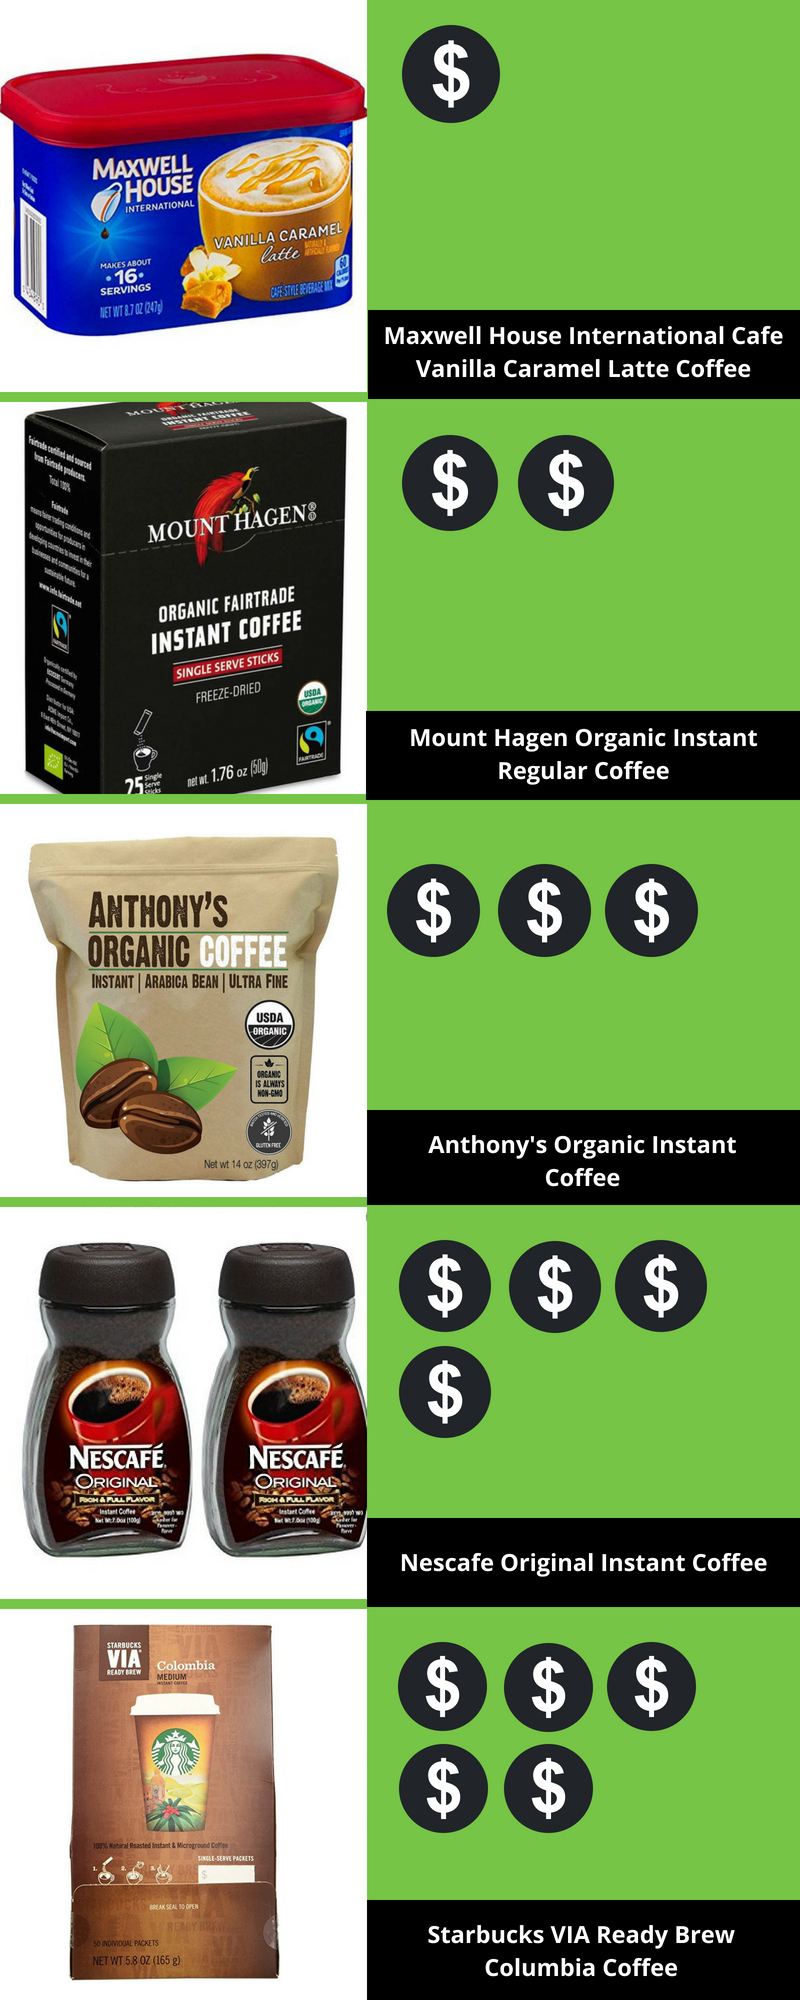 How Much Does Instant Coffee Cost - WITH TEXT